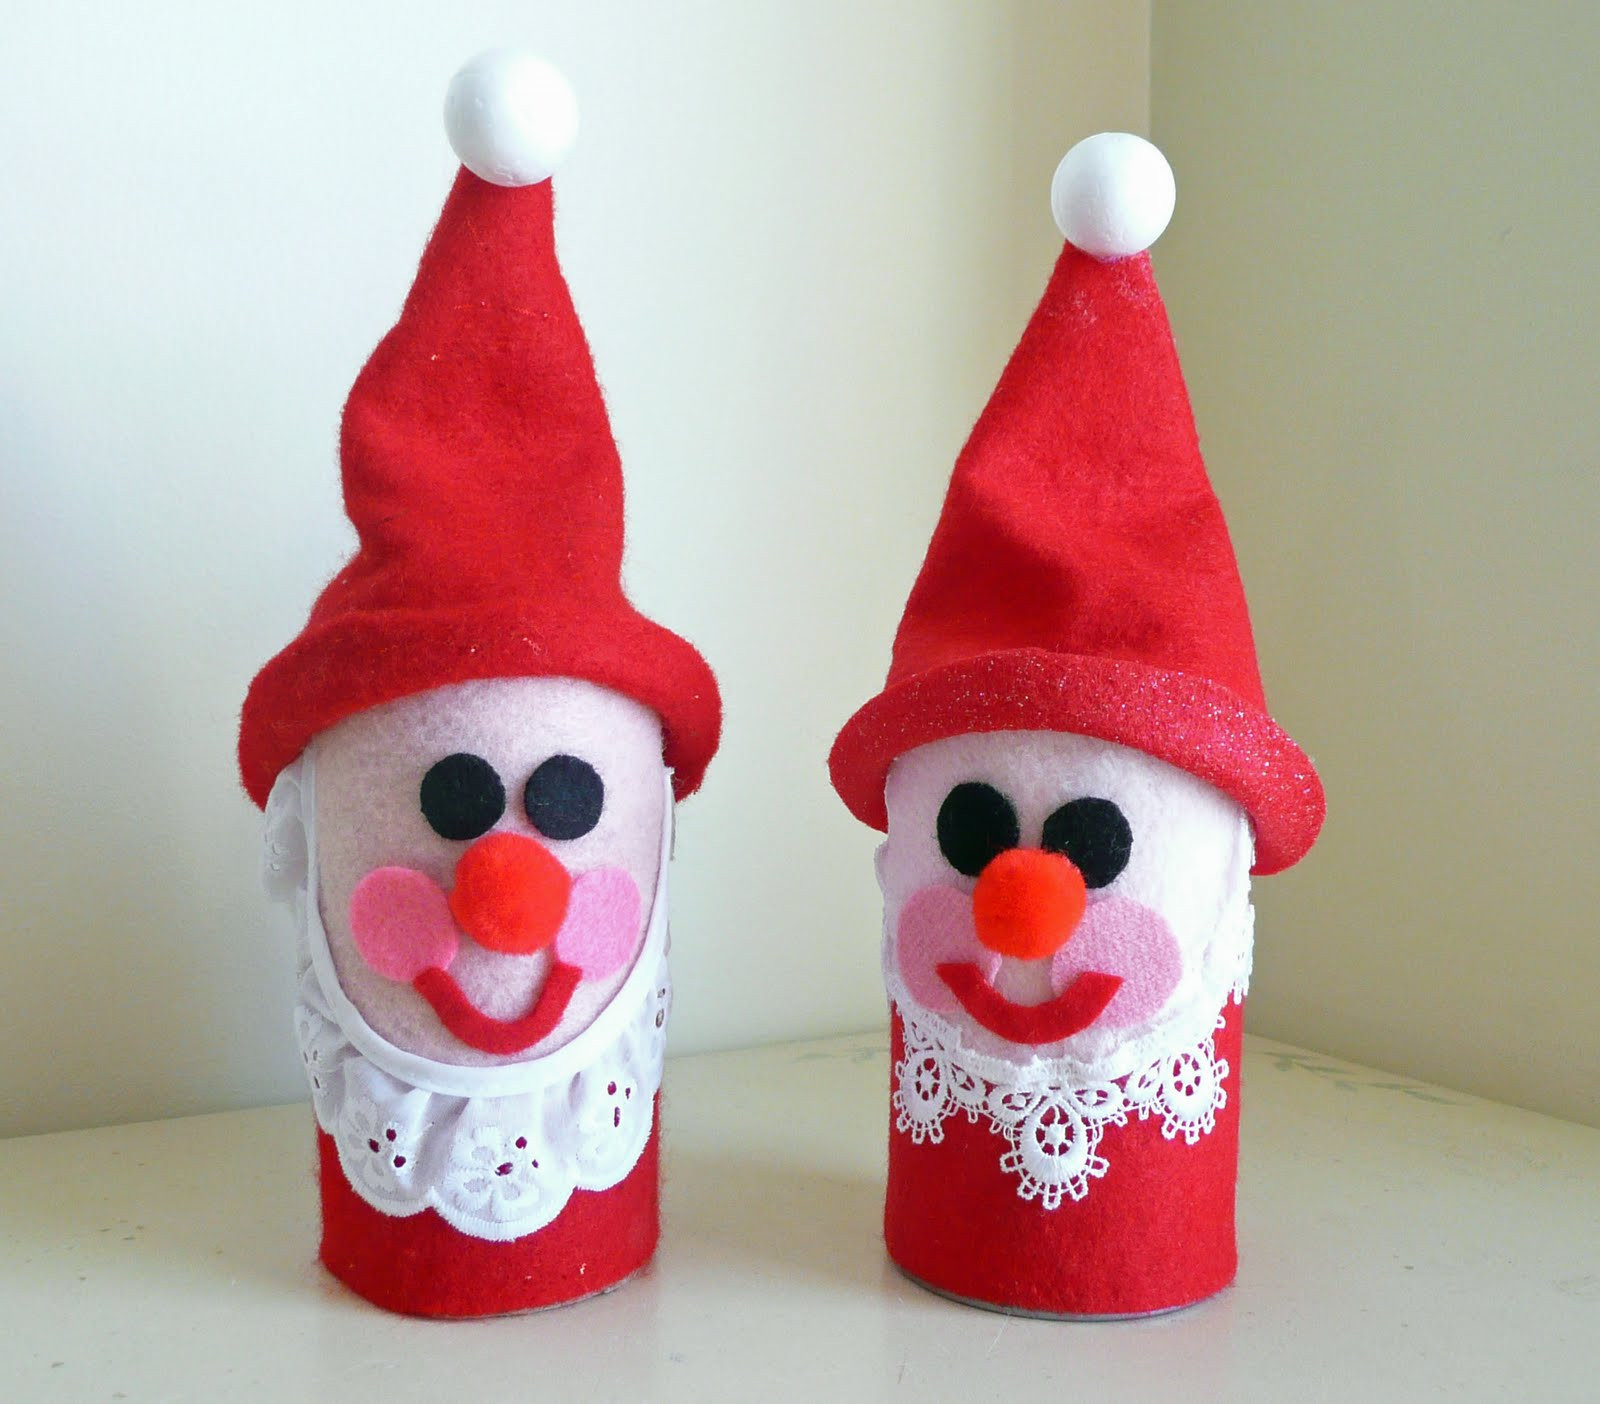 Best ideas about Christmas Craft Ideas For Kids . Save or Pin Preschool Crafts for Kids Toilet Roll Santa Christmas Craft Now.